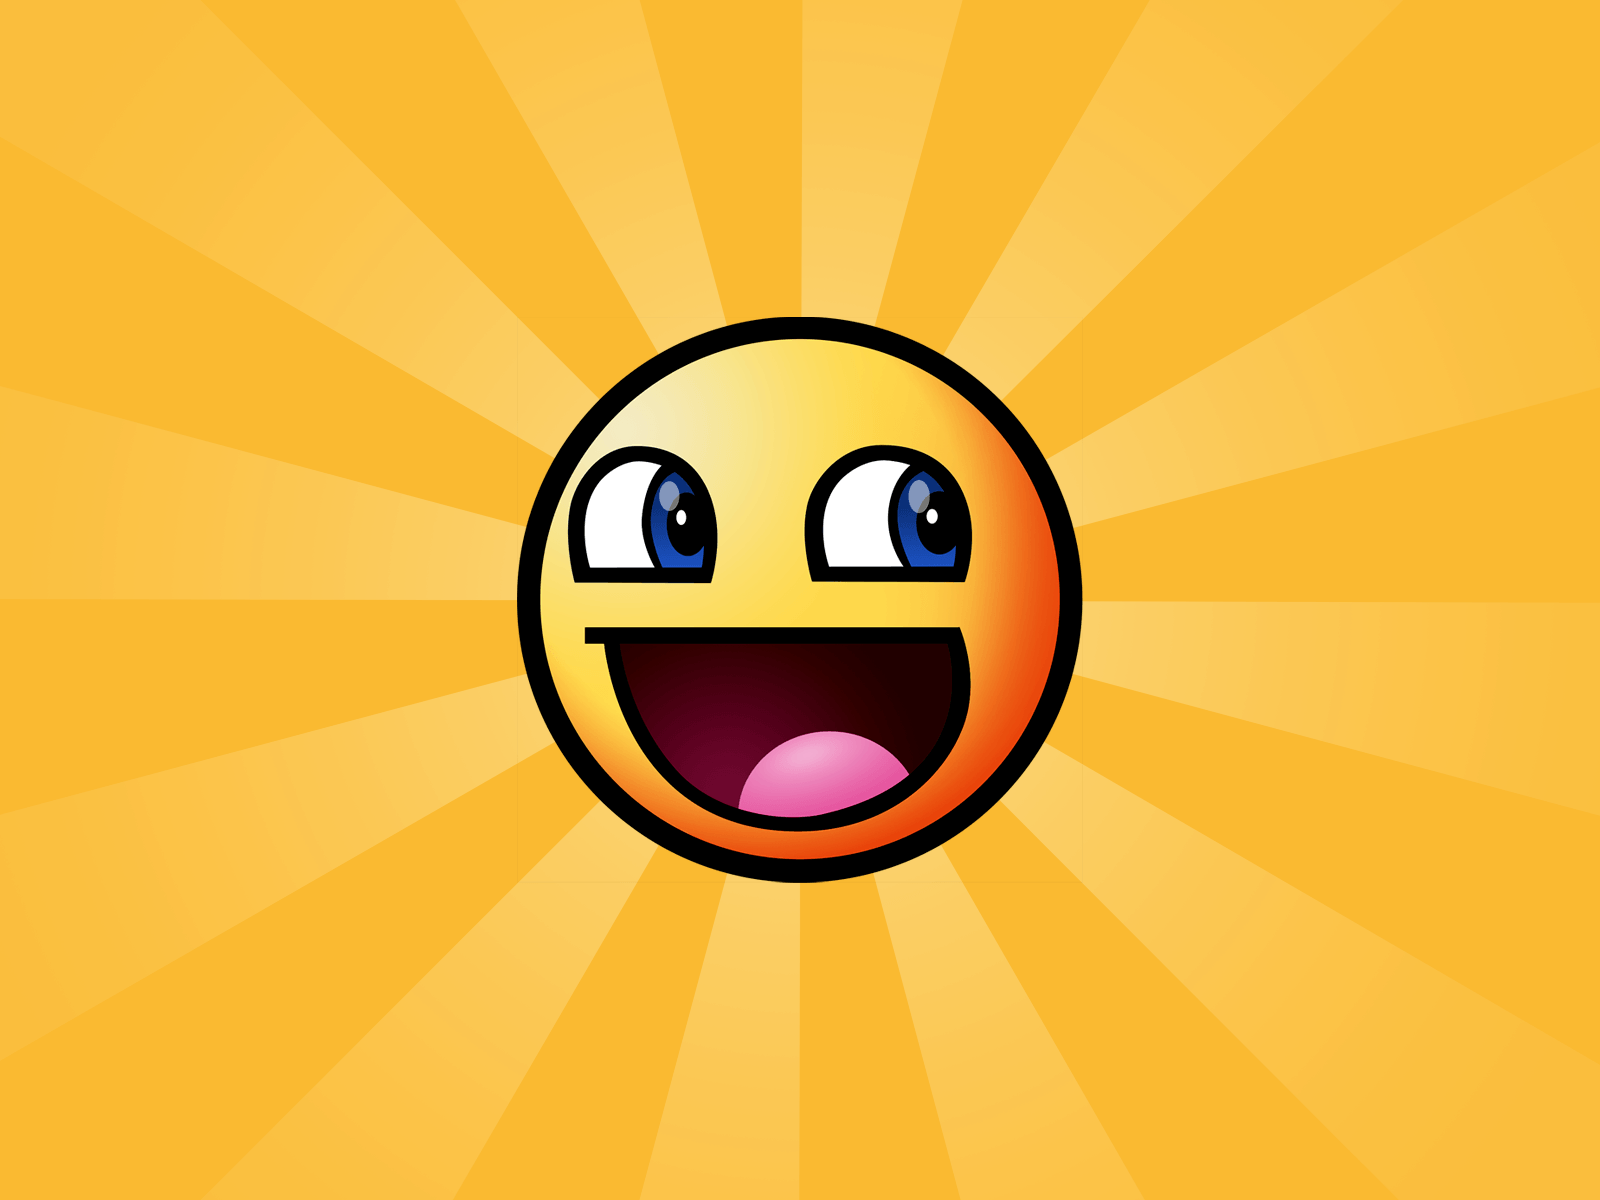 smiley backgrounds - photo #31